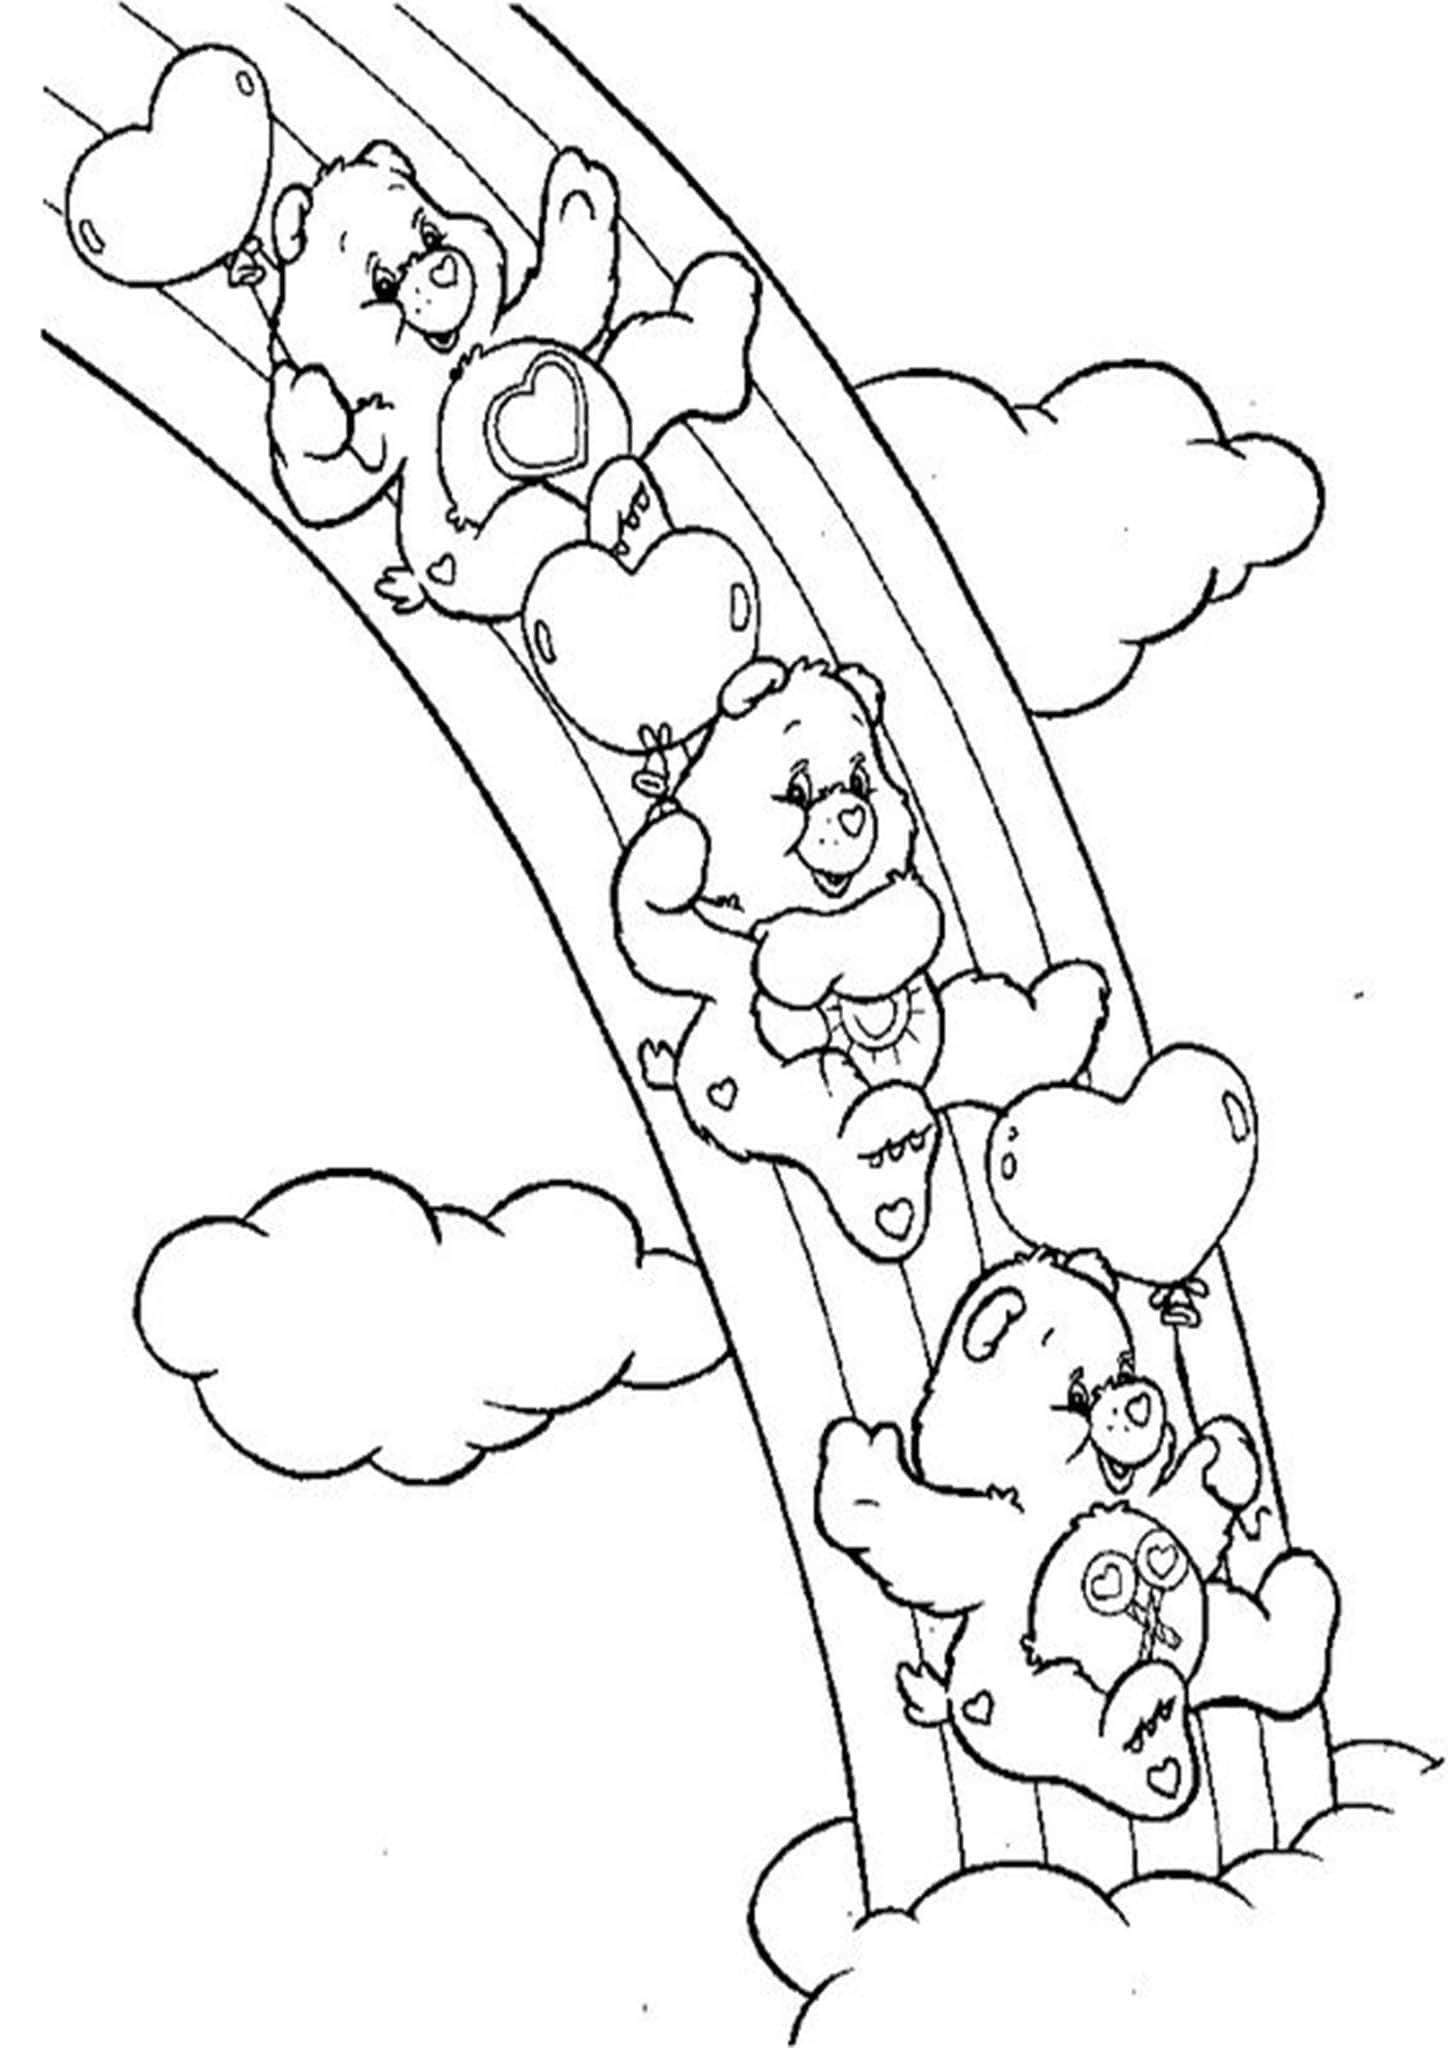 Free Easy To Print Rainbow Coloring Pages Bear Coloring Pages Cute Coloring Pages Teddy Bear Coloring Pages